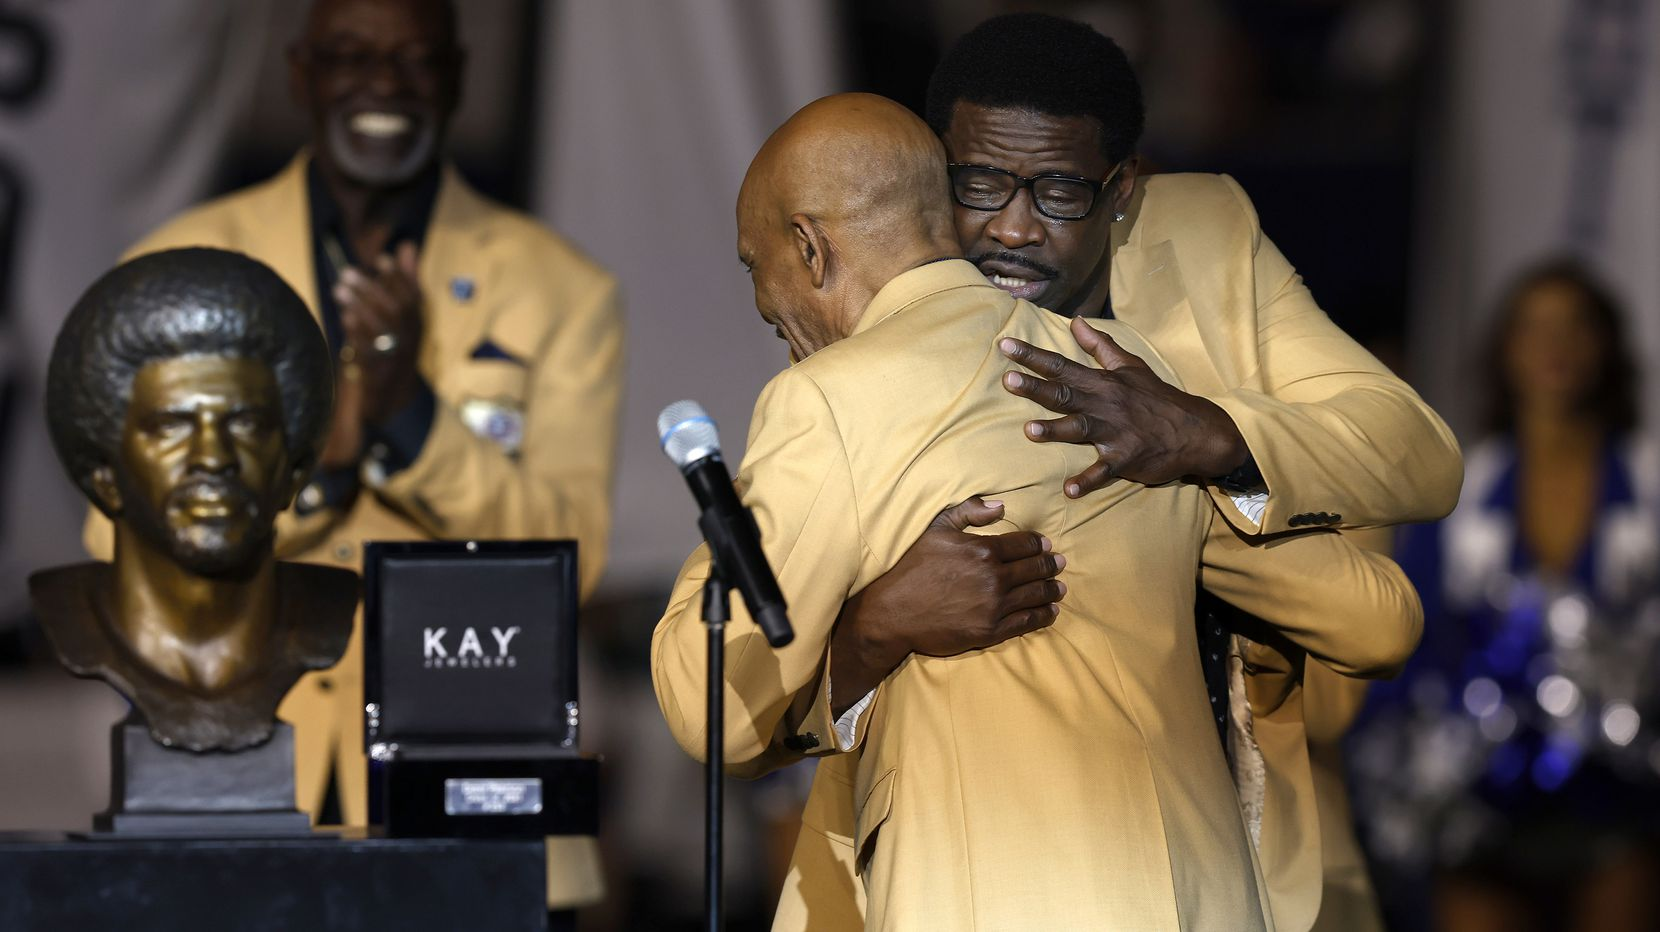 Dallas Cowboys Pro Football Hall of Famer Drew Pearson (left) receives a hug from another Cowboys #88, Hall of Famer Michael Irvin, during a ring ceremony at AT&T Stadium in Arlington, Monday, September 27, 2021. (Tom Fox/The Dallas Morning News)